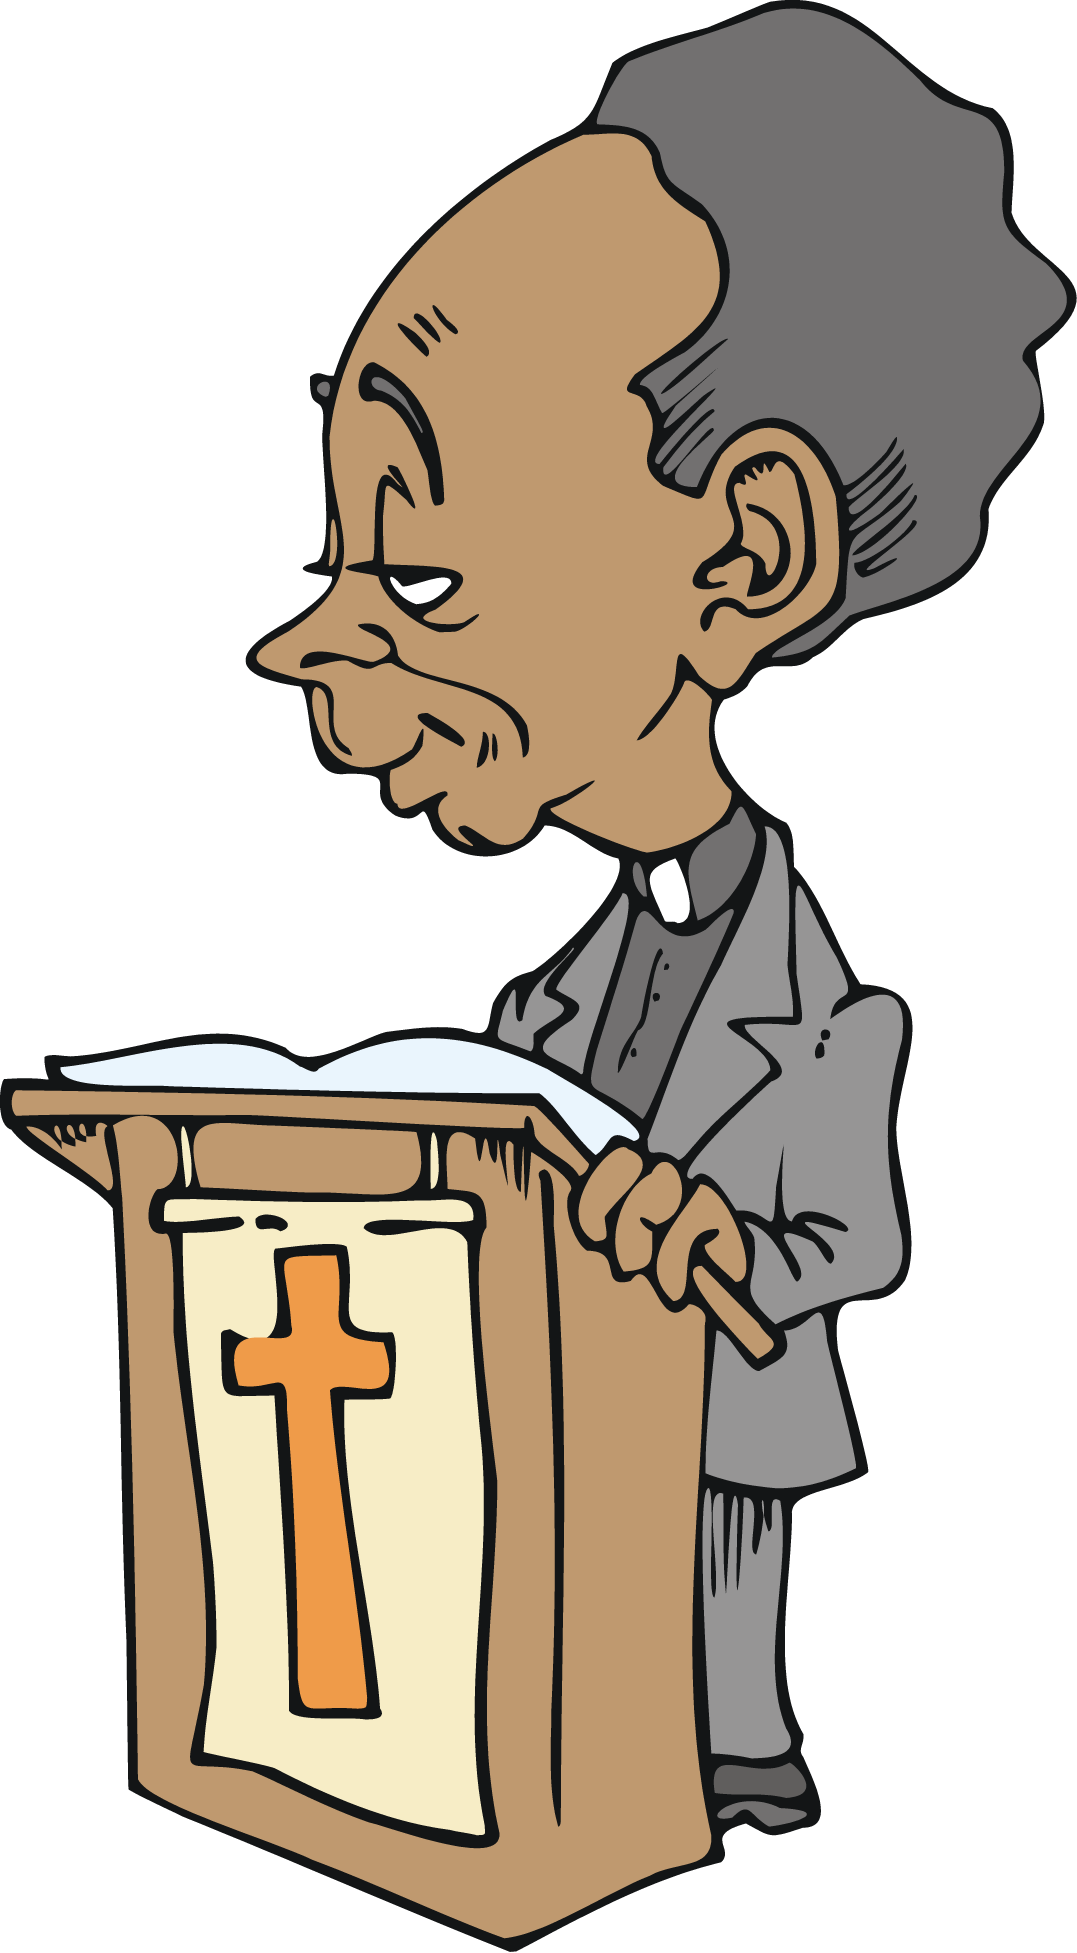 pastor clipart free free download best pastor clipart free on rh clipartmag com pastoral appreciation clipart pastor appreciation clip art black and white